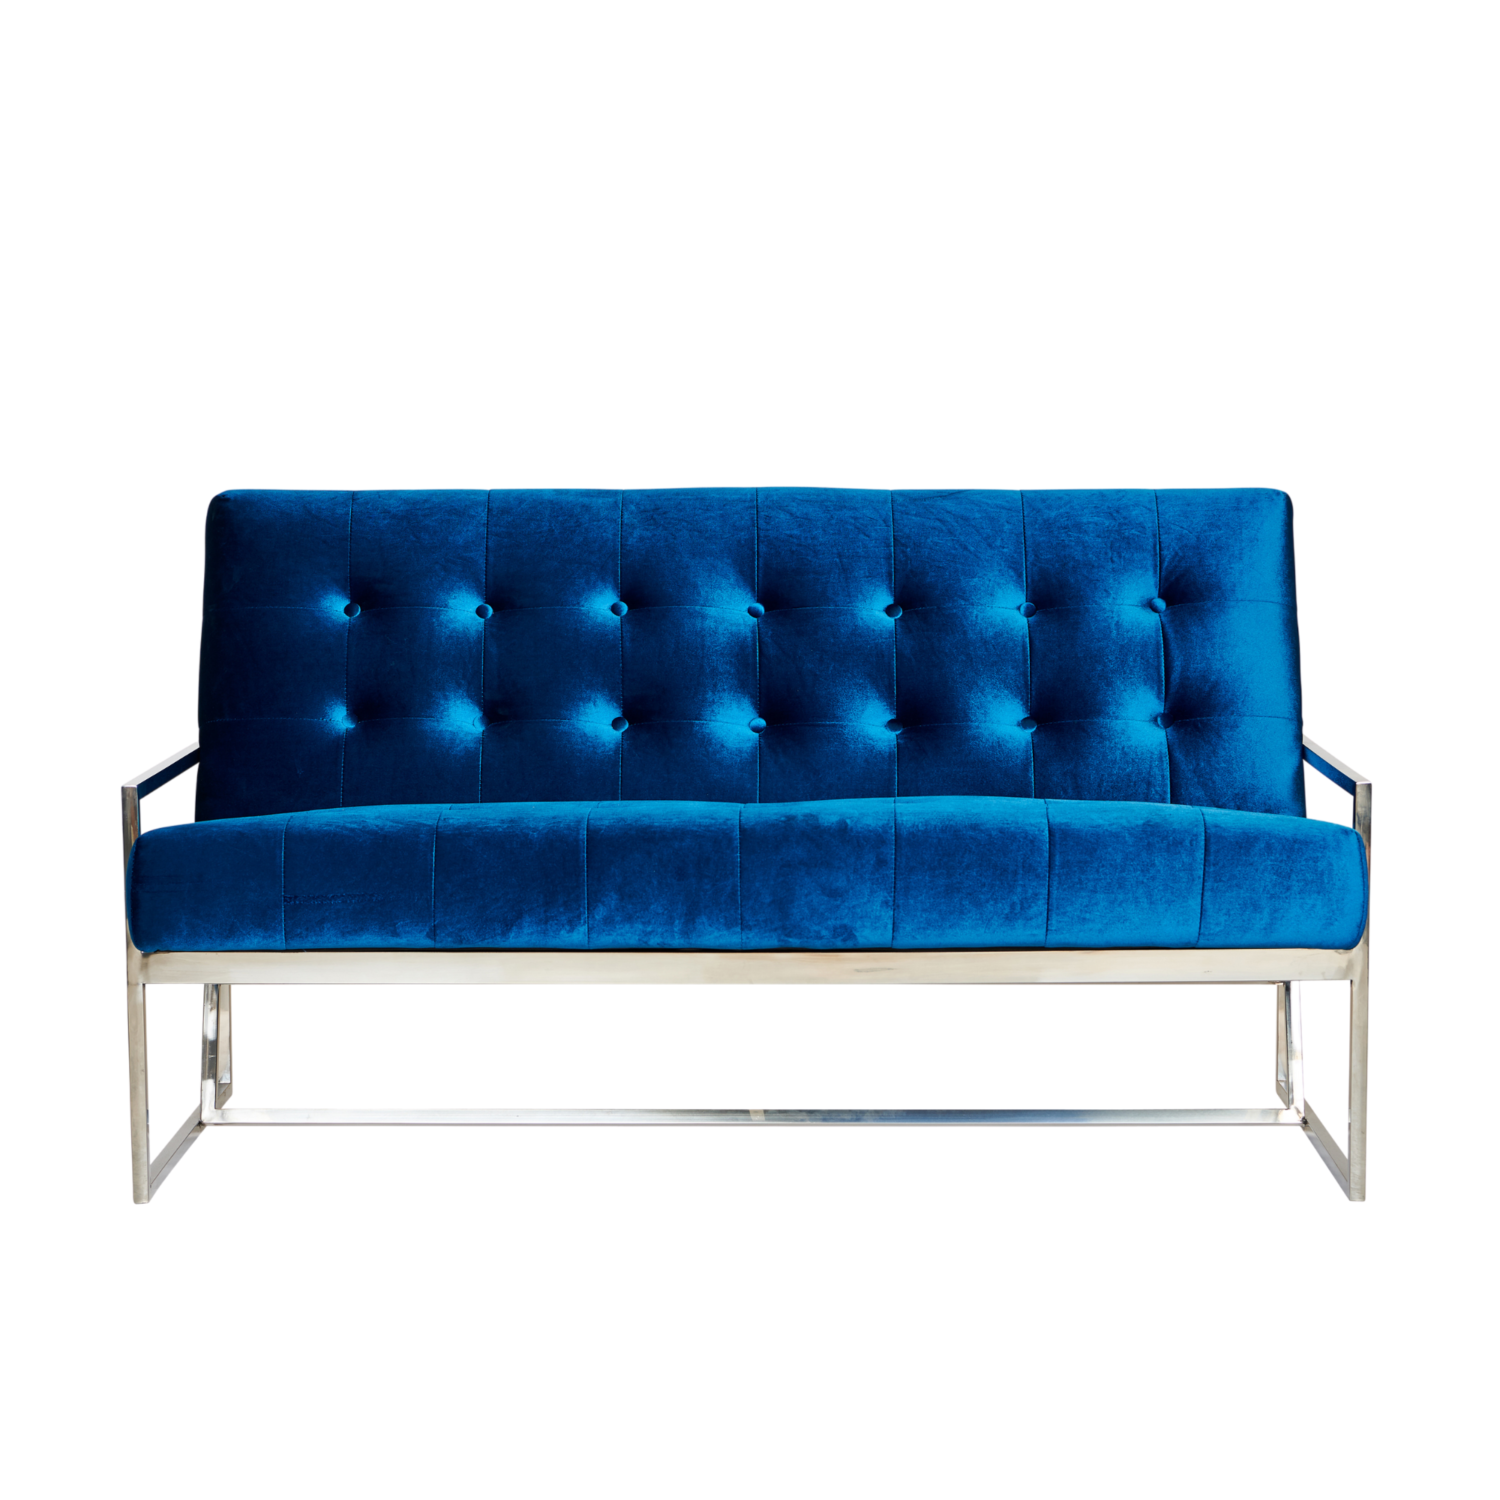 Starlet Two Seater Sofa - Teal / Silver Frame - Event Artillery